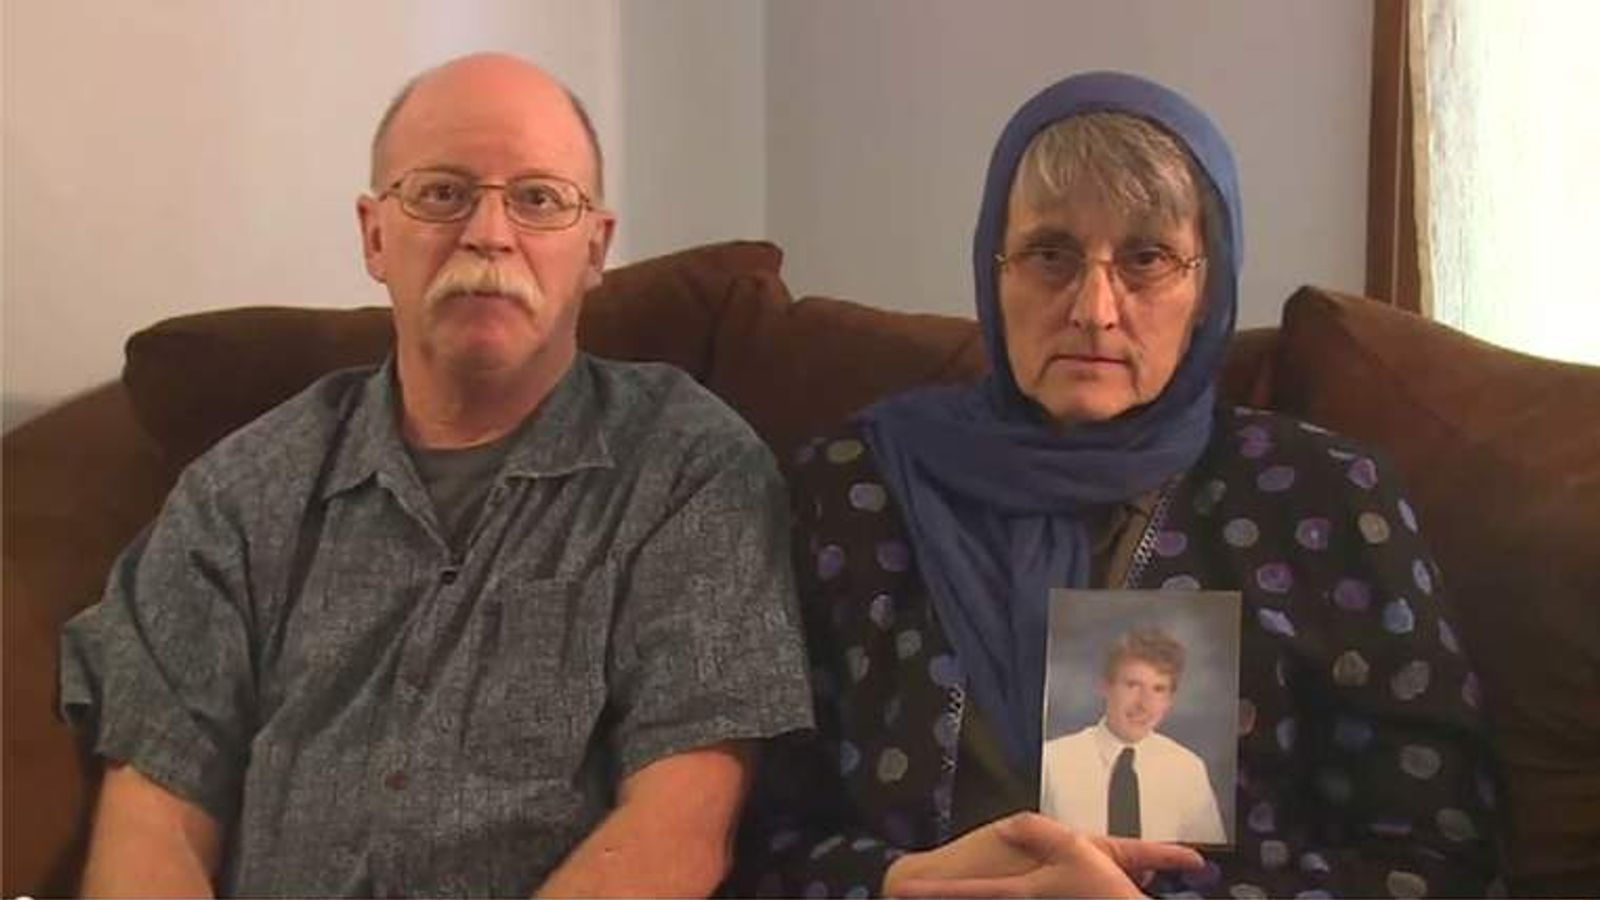 Ed and Paula Kassig plea for son's release in video